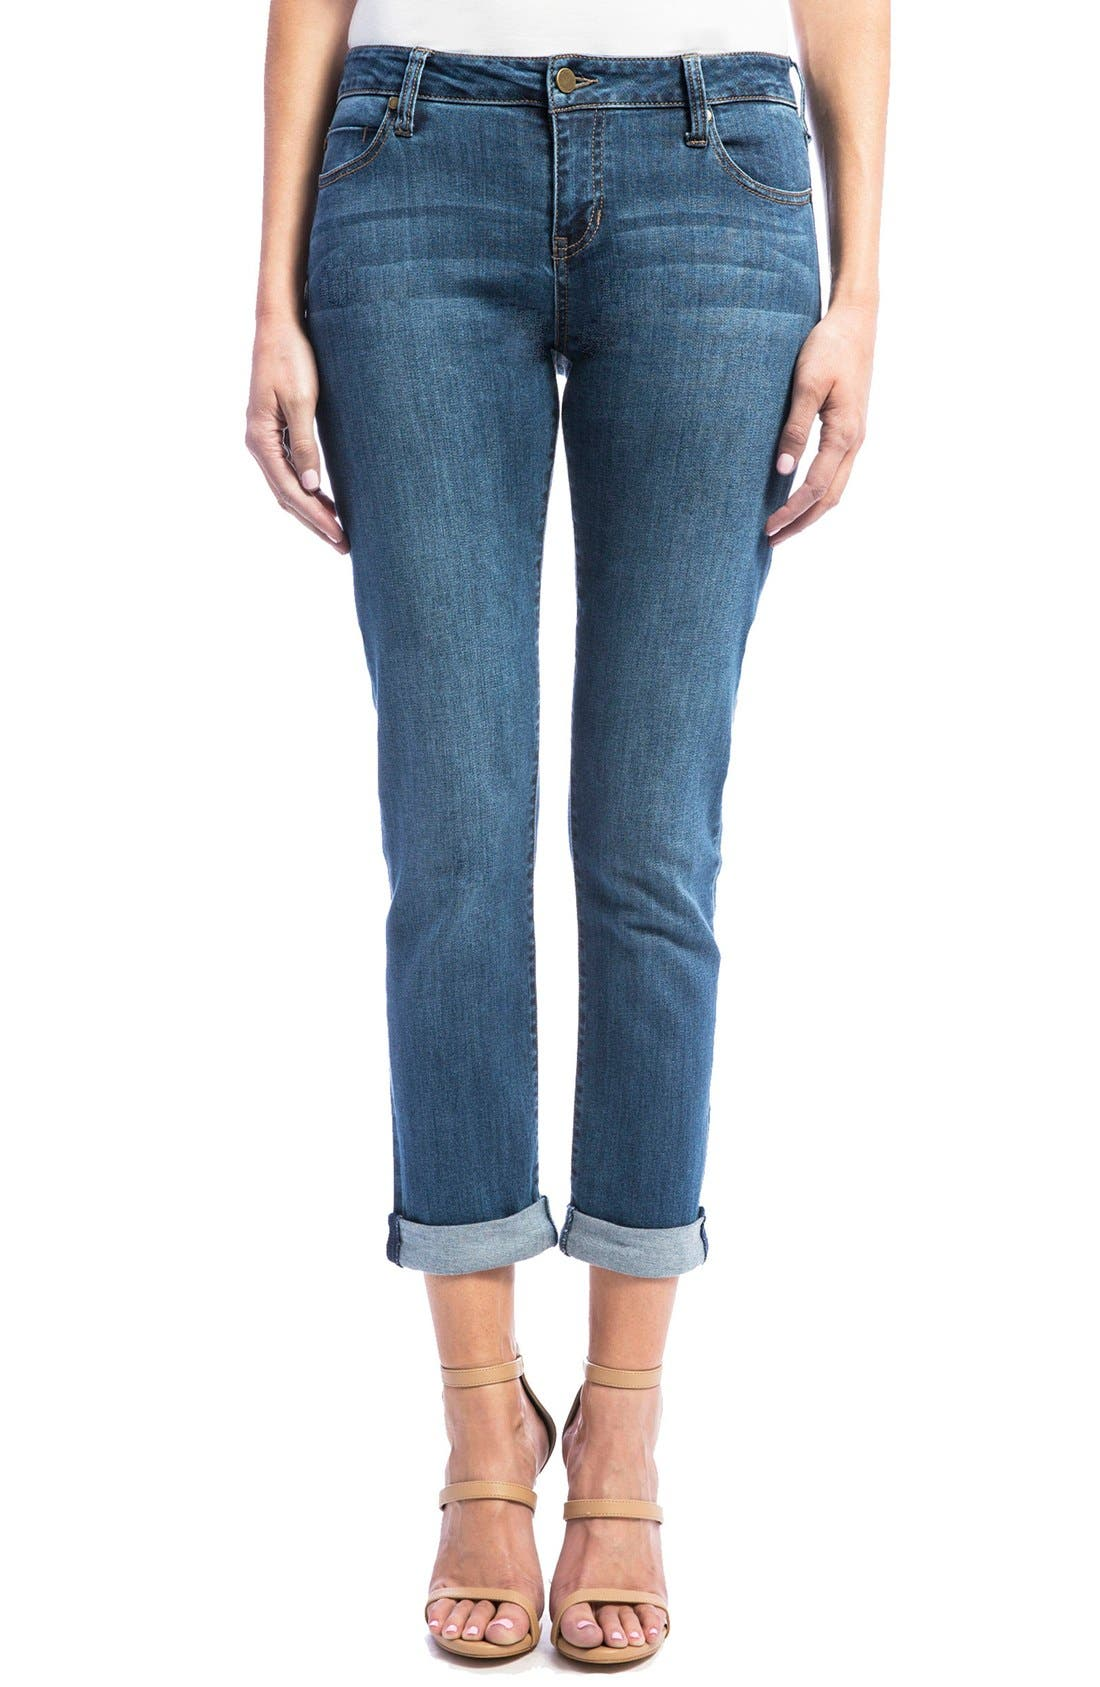 Jeans Company Peyton Slim Stretch Crop Boyfriend Jeans,                         Main,                         color, Montauk Mid. Blue